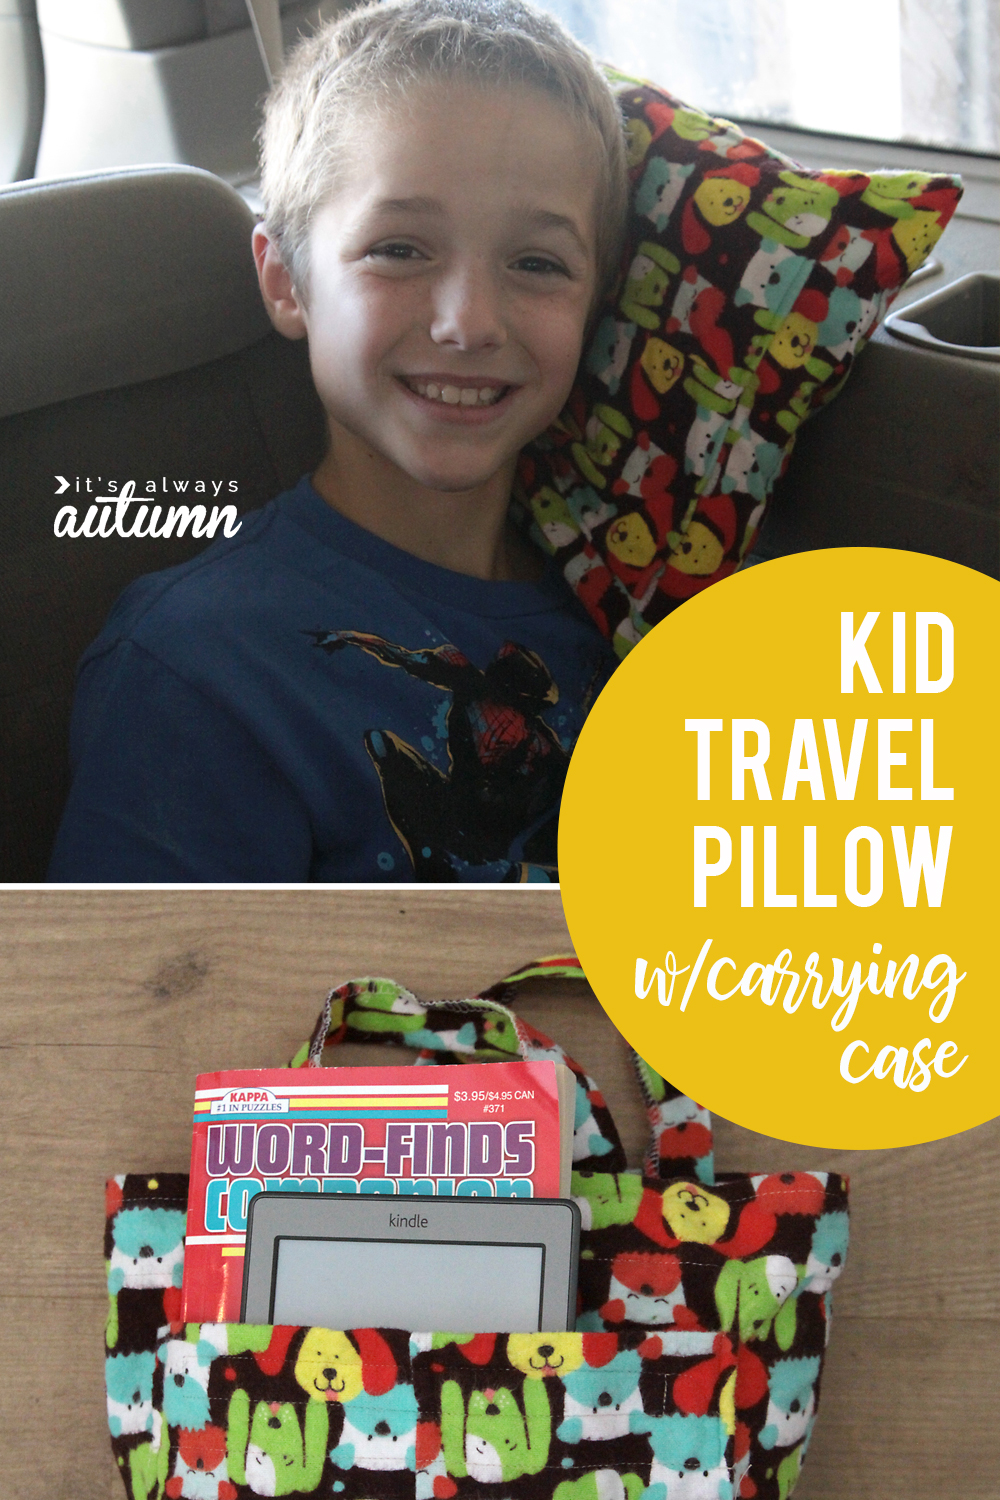 Learn how to sew a kid travel pillow and carrying case for your next long car ride!